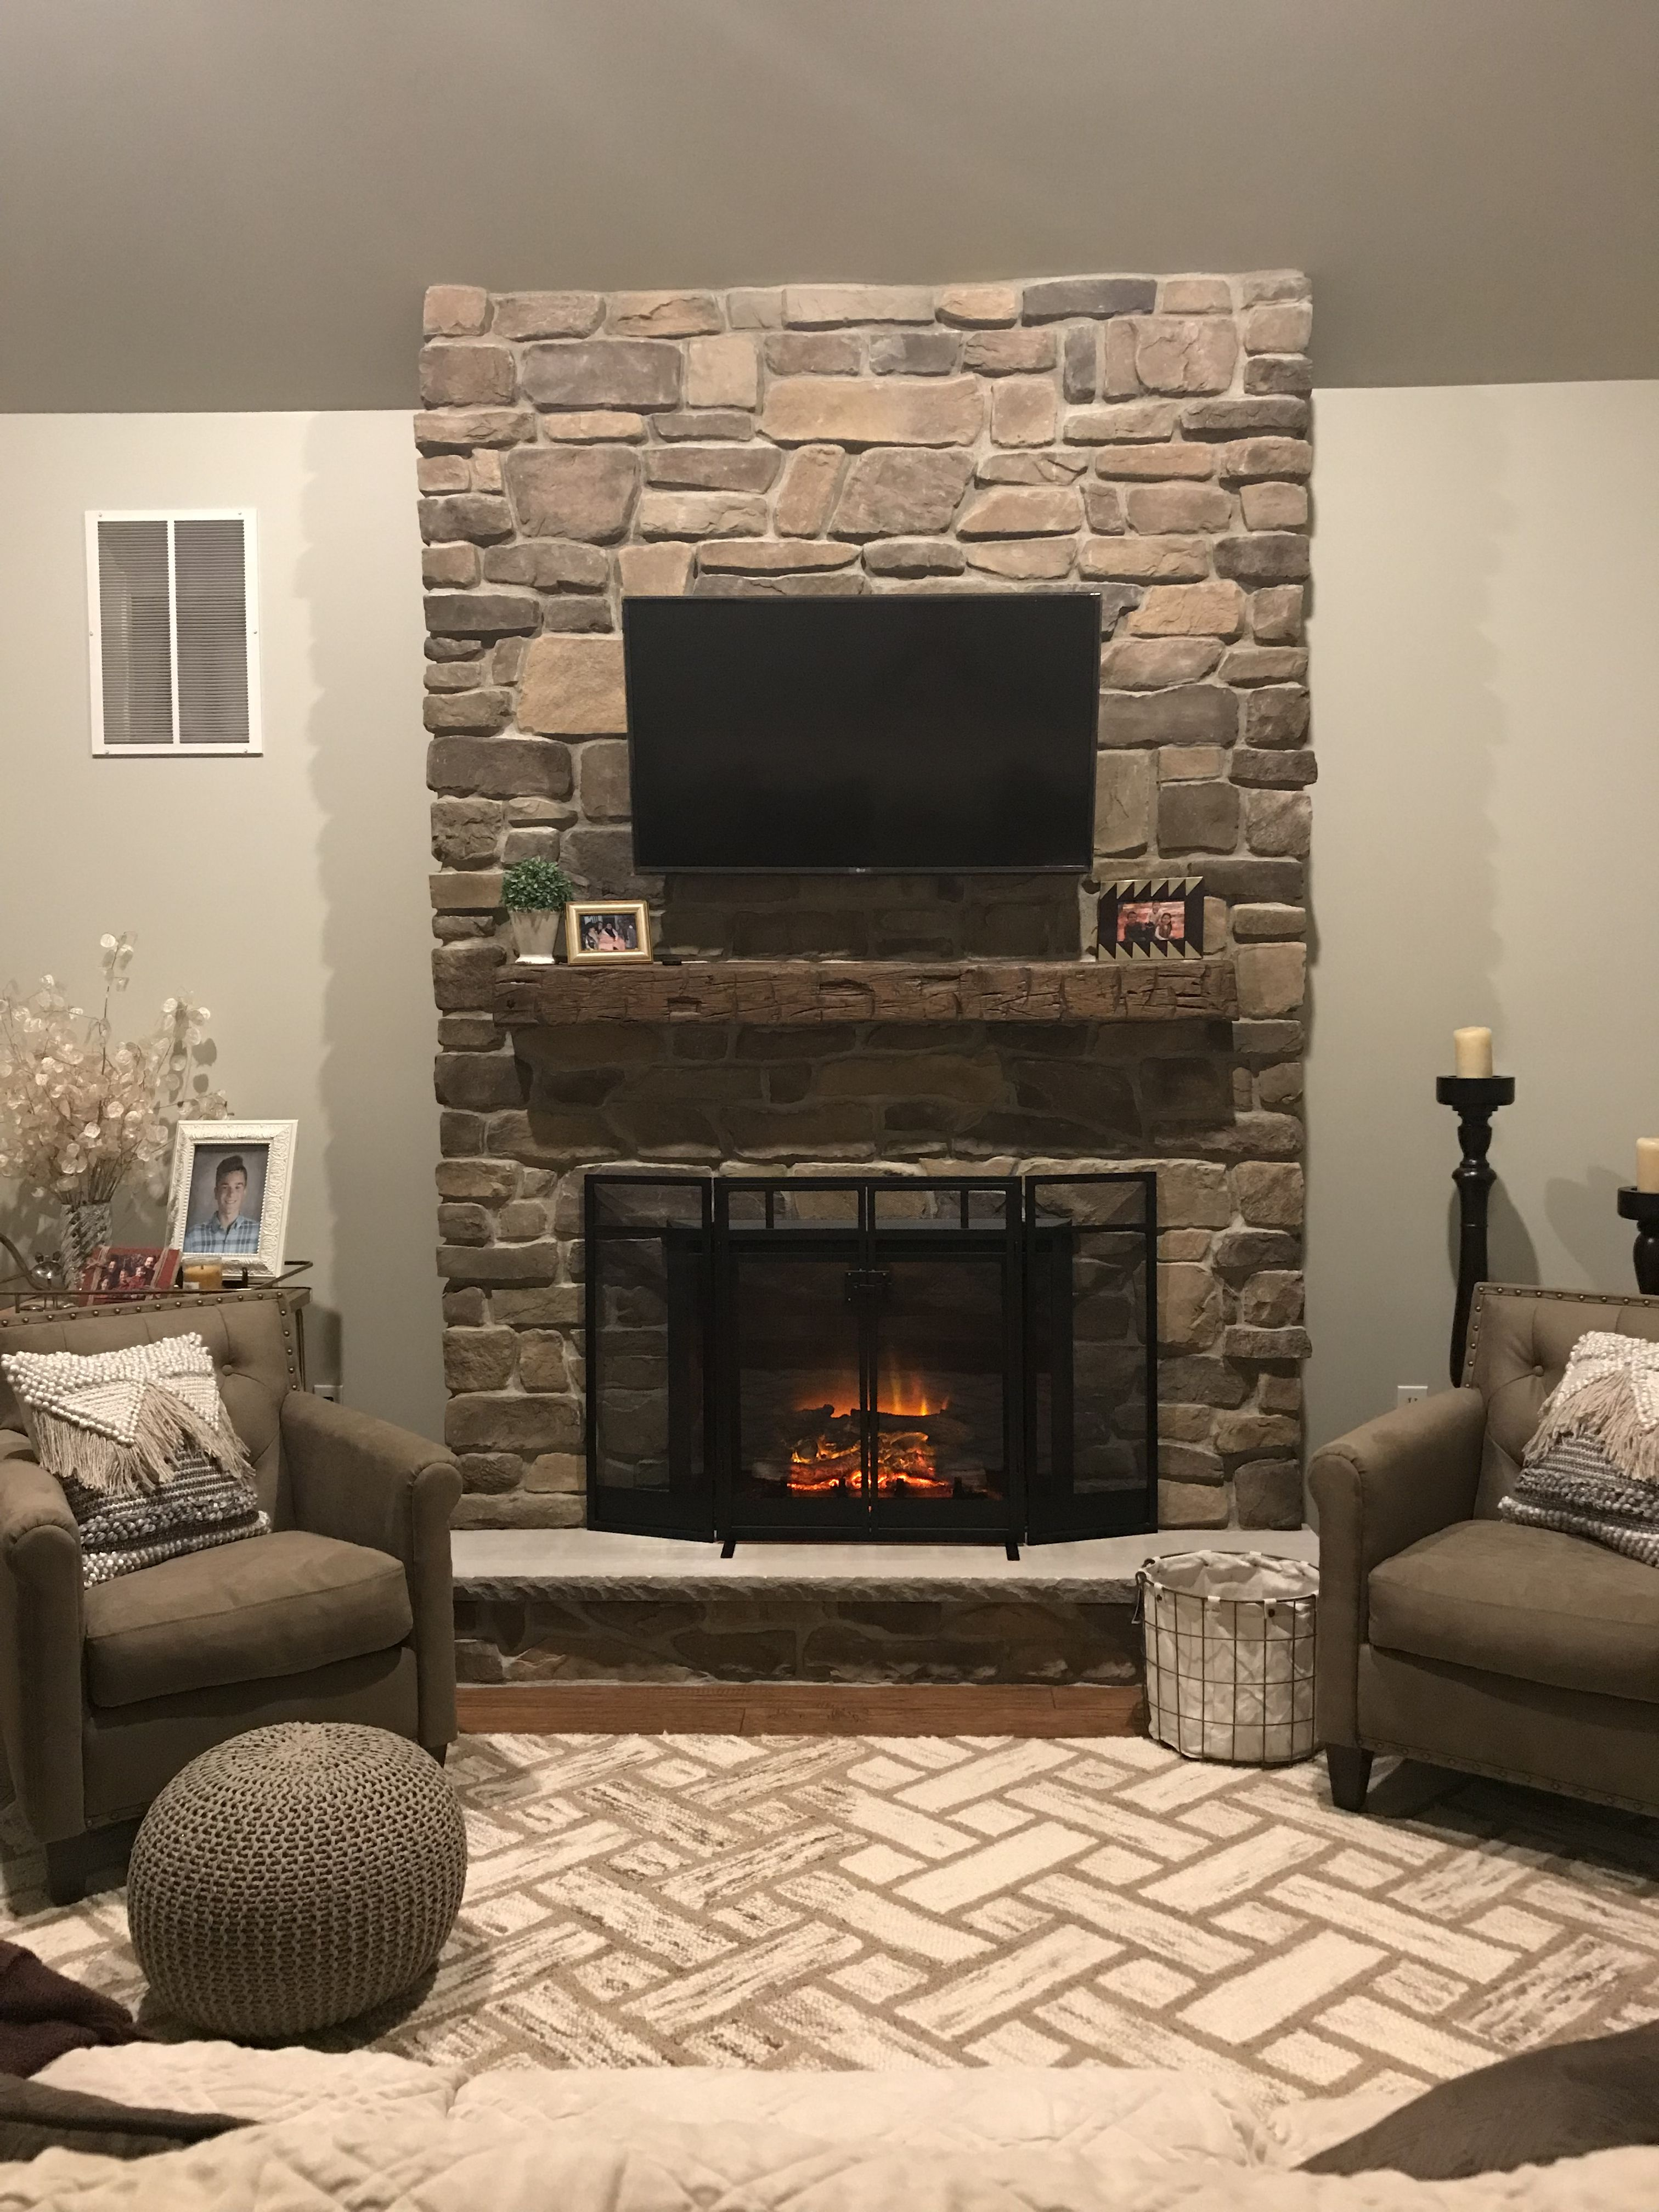 Eldorado Stone Veneer Fireplace Diy El Dorado Stone Veneer Fireplace In Veneto Fieldledge My